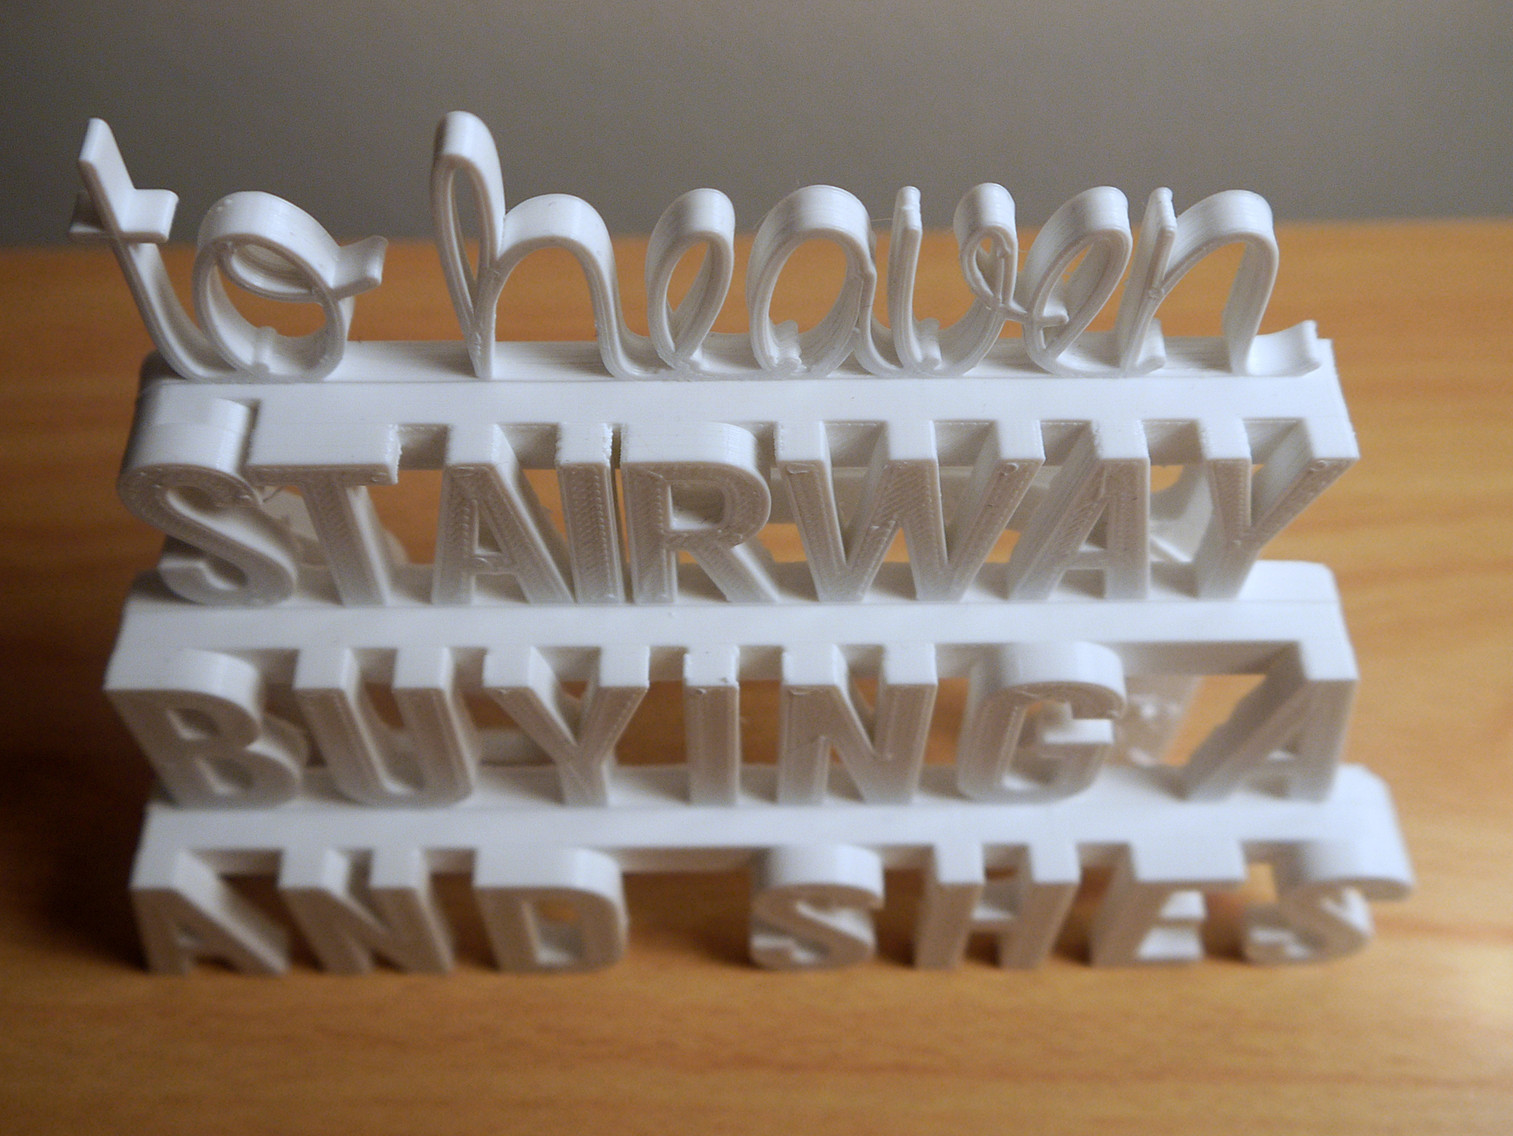 P1060395.JPG Download STL file Stairway to Heaven - 3D Printed Art (Led Zeppelin) • 3D printer object, ThePursuit